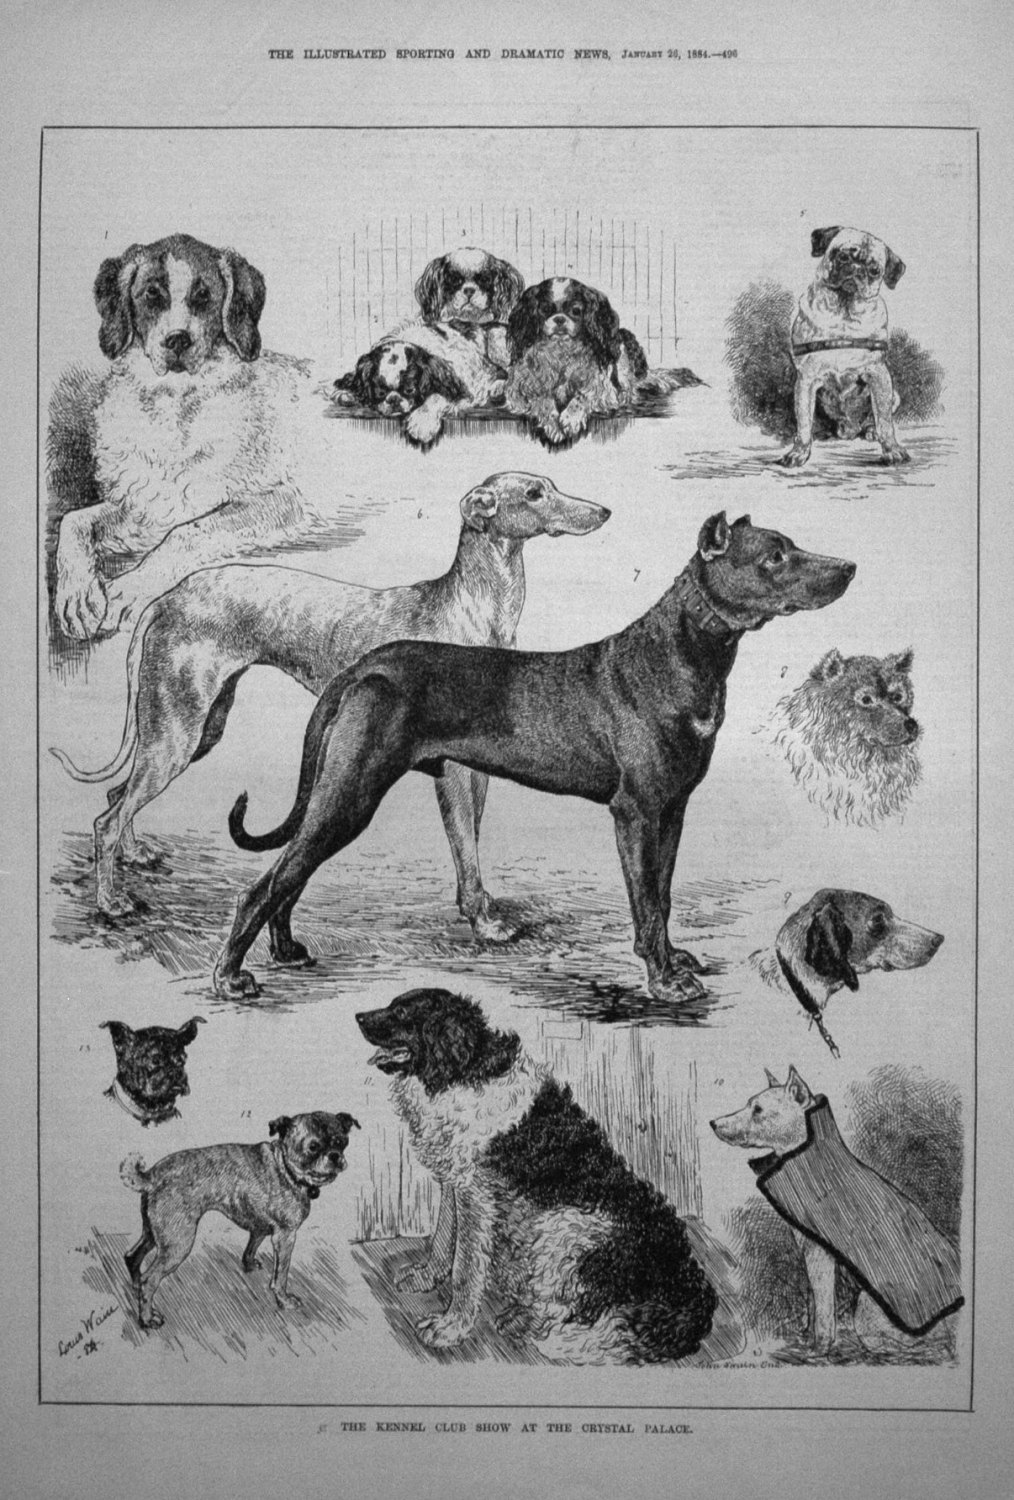 The Kennel Club Show at the Crystal Palace. 1884